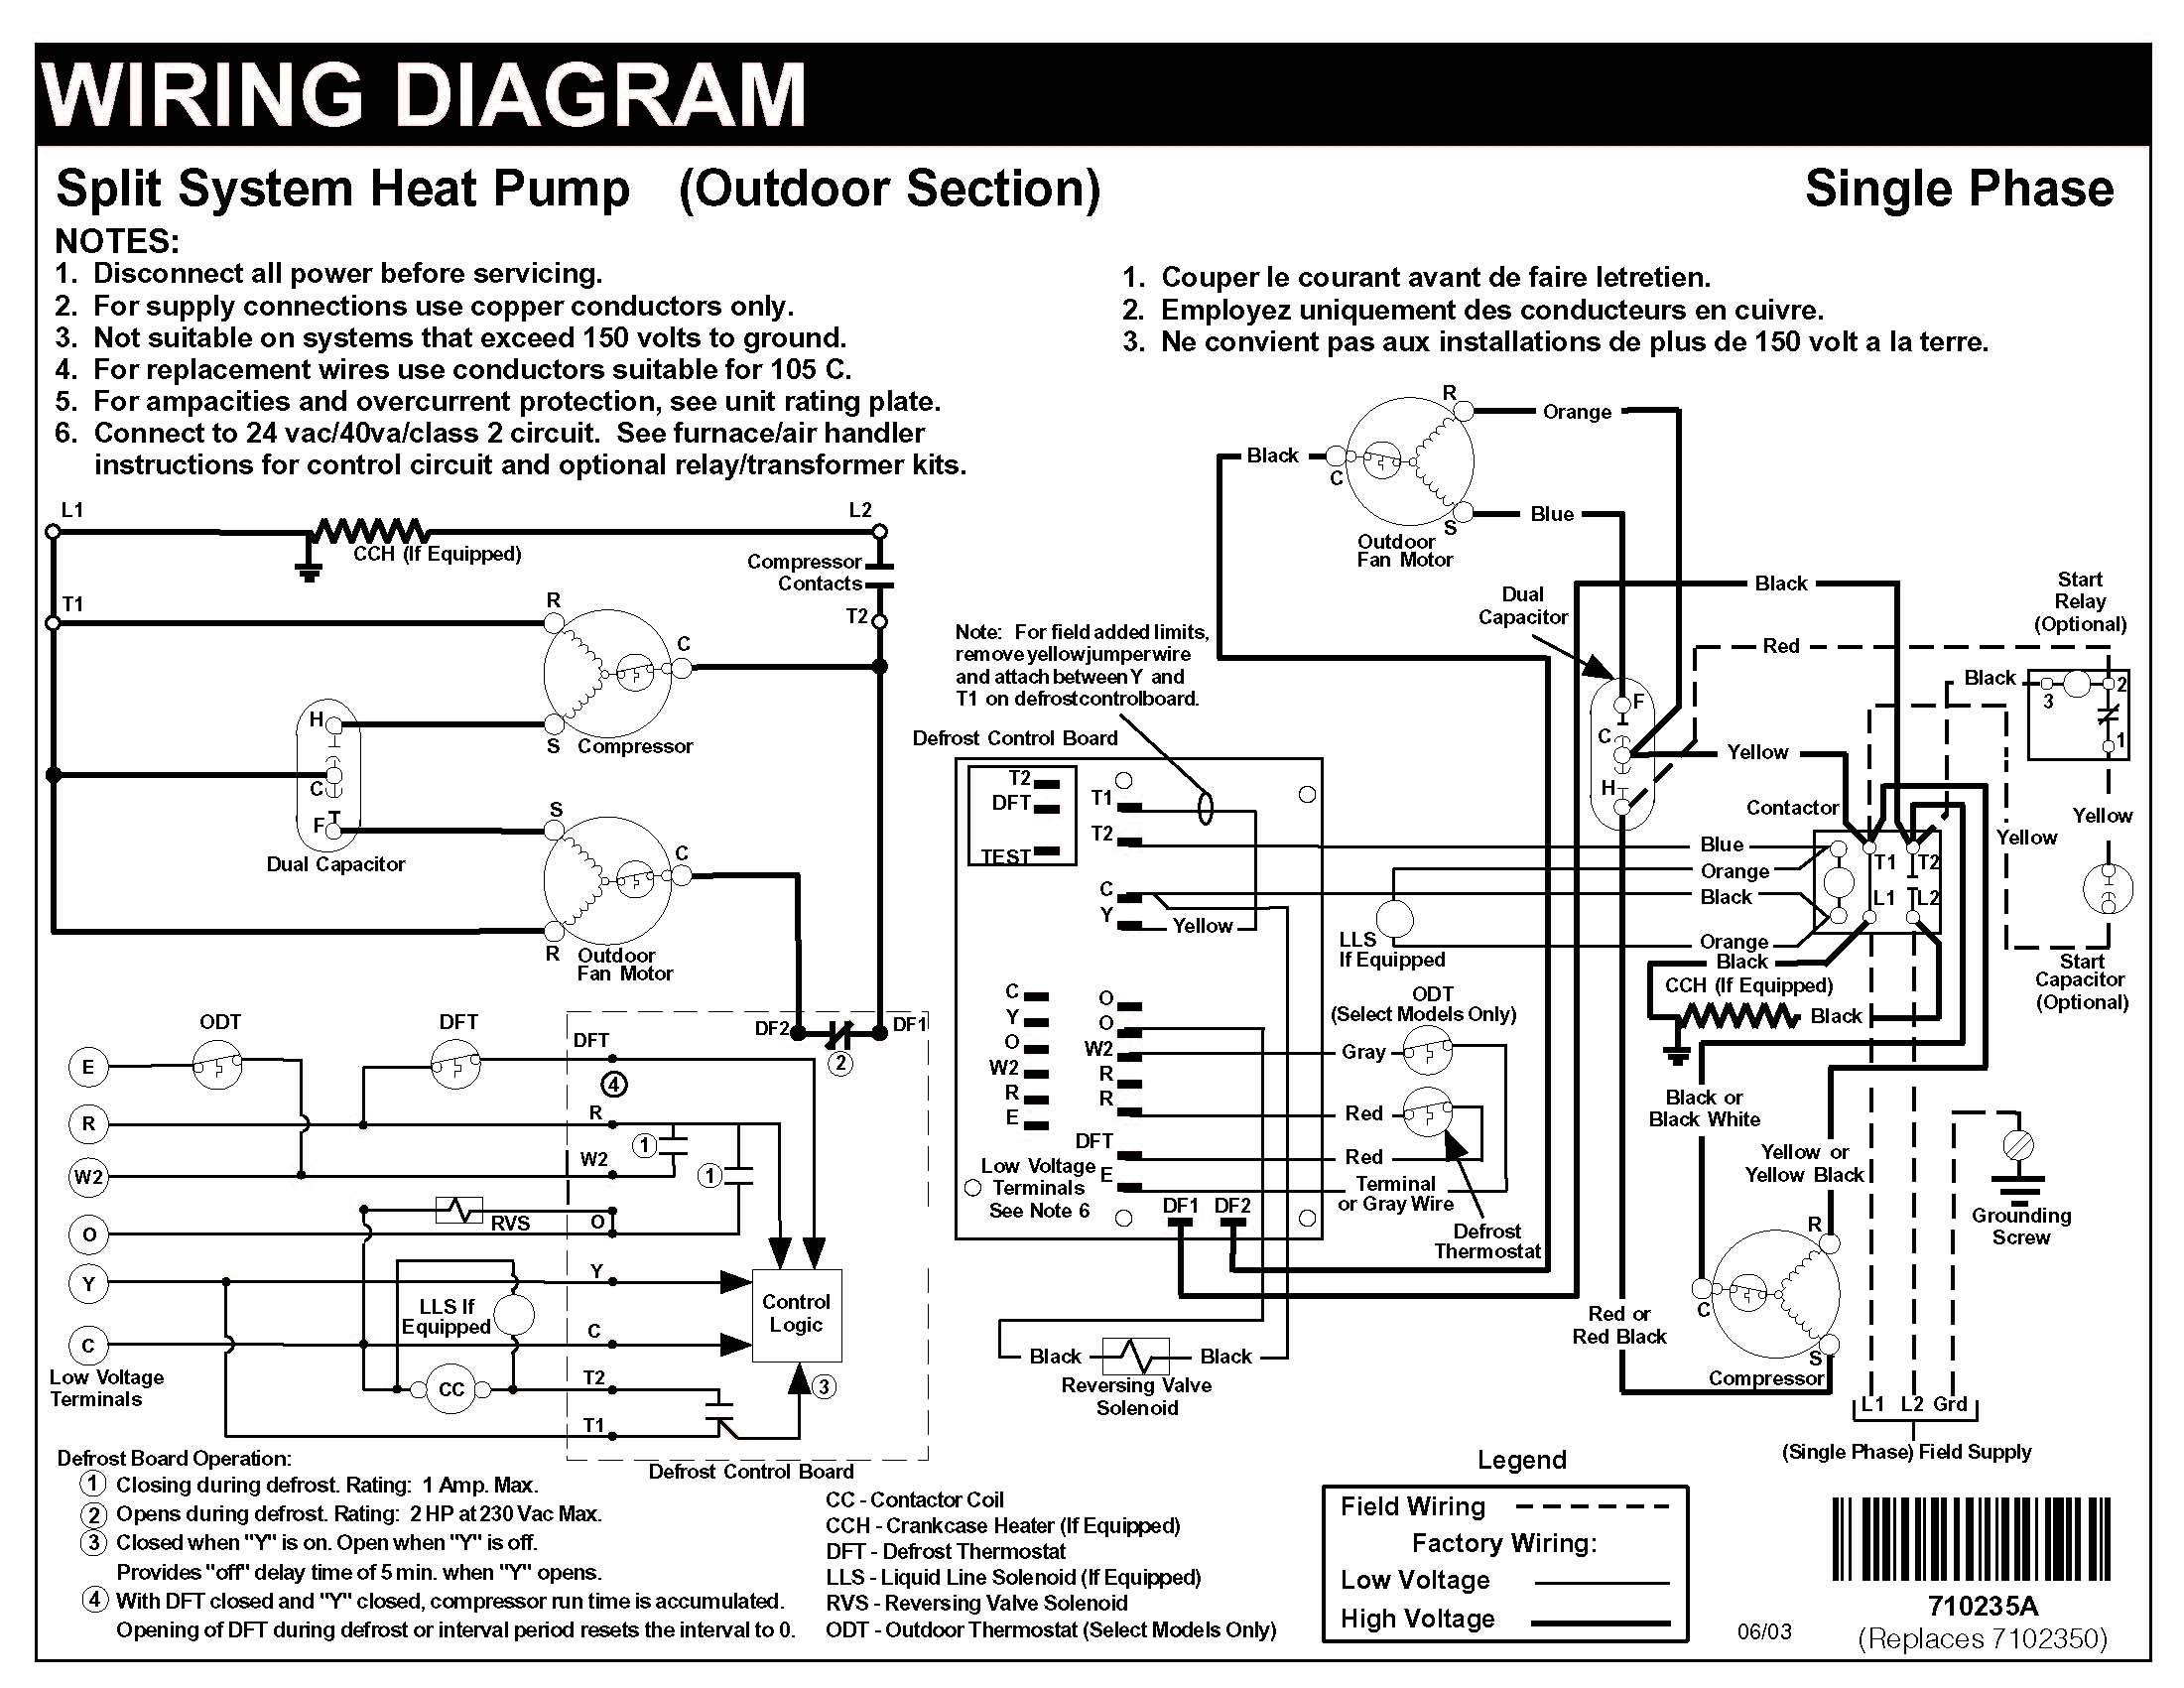 Heat Pump Wiring Schematic - Data Wiring Diagram Today - Heatpump Wiring Diagram